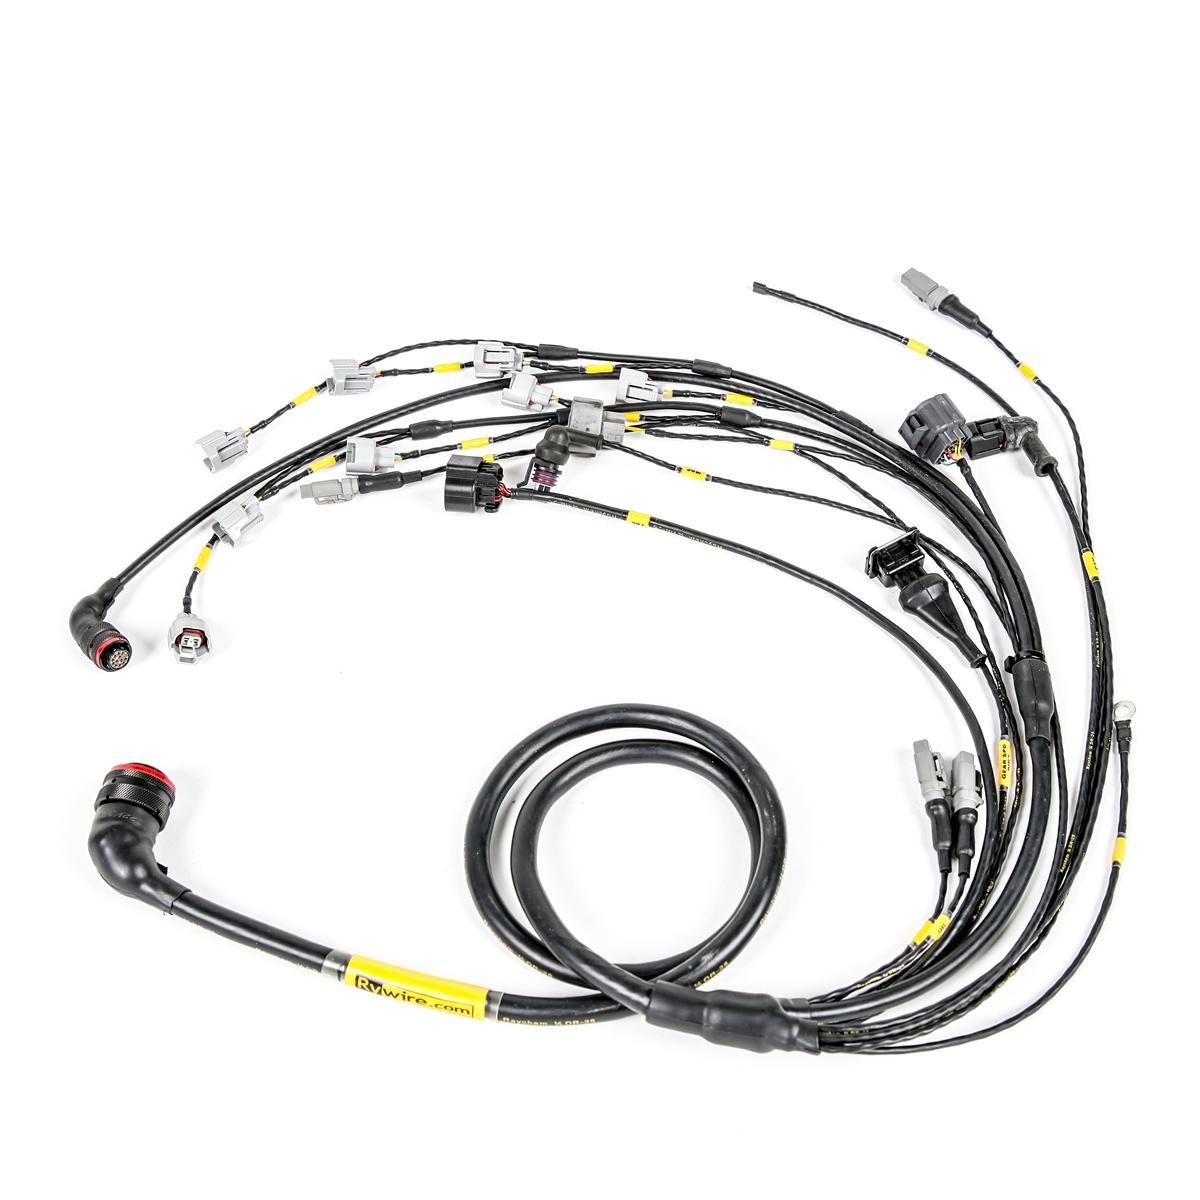 Pleasing Rywire Com Mil Spec Custom Engine Harness Wiring Cloud Hisonuggs Outletorg